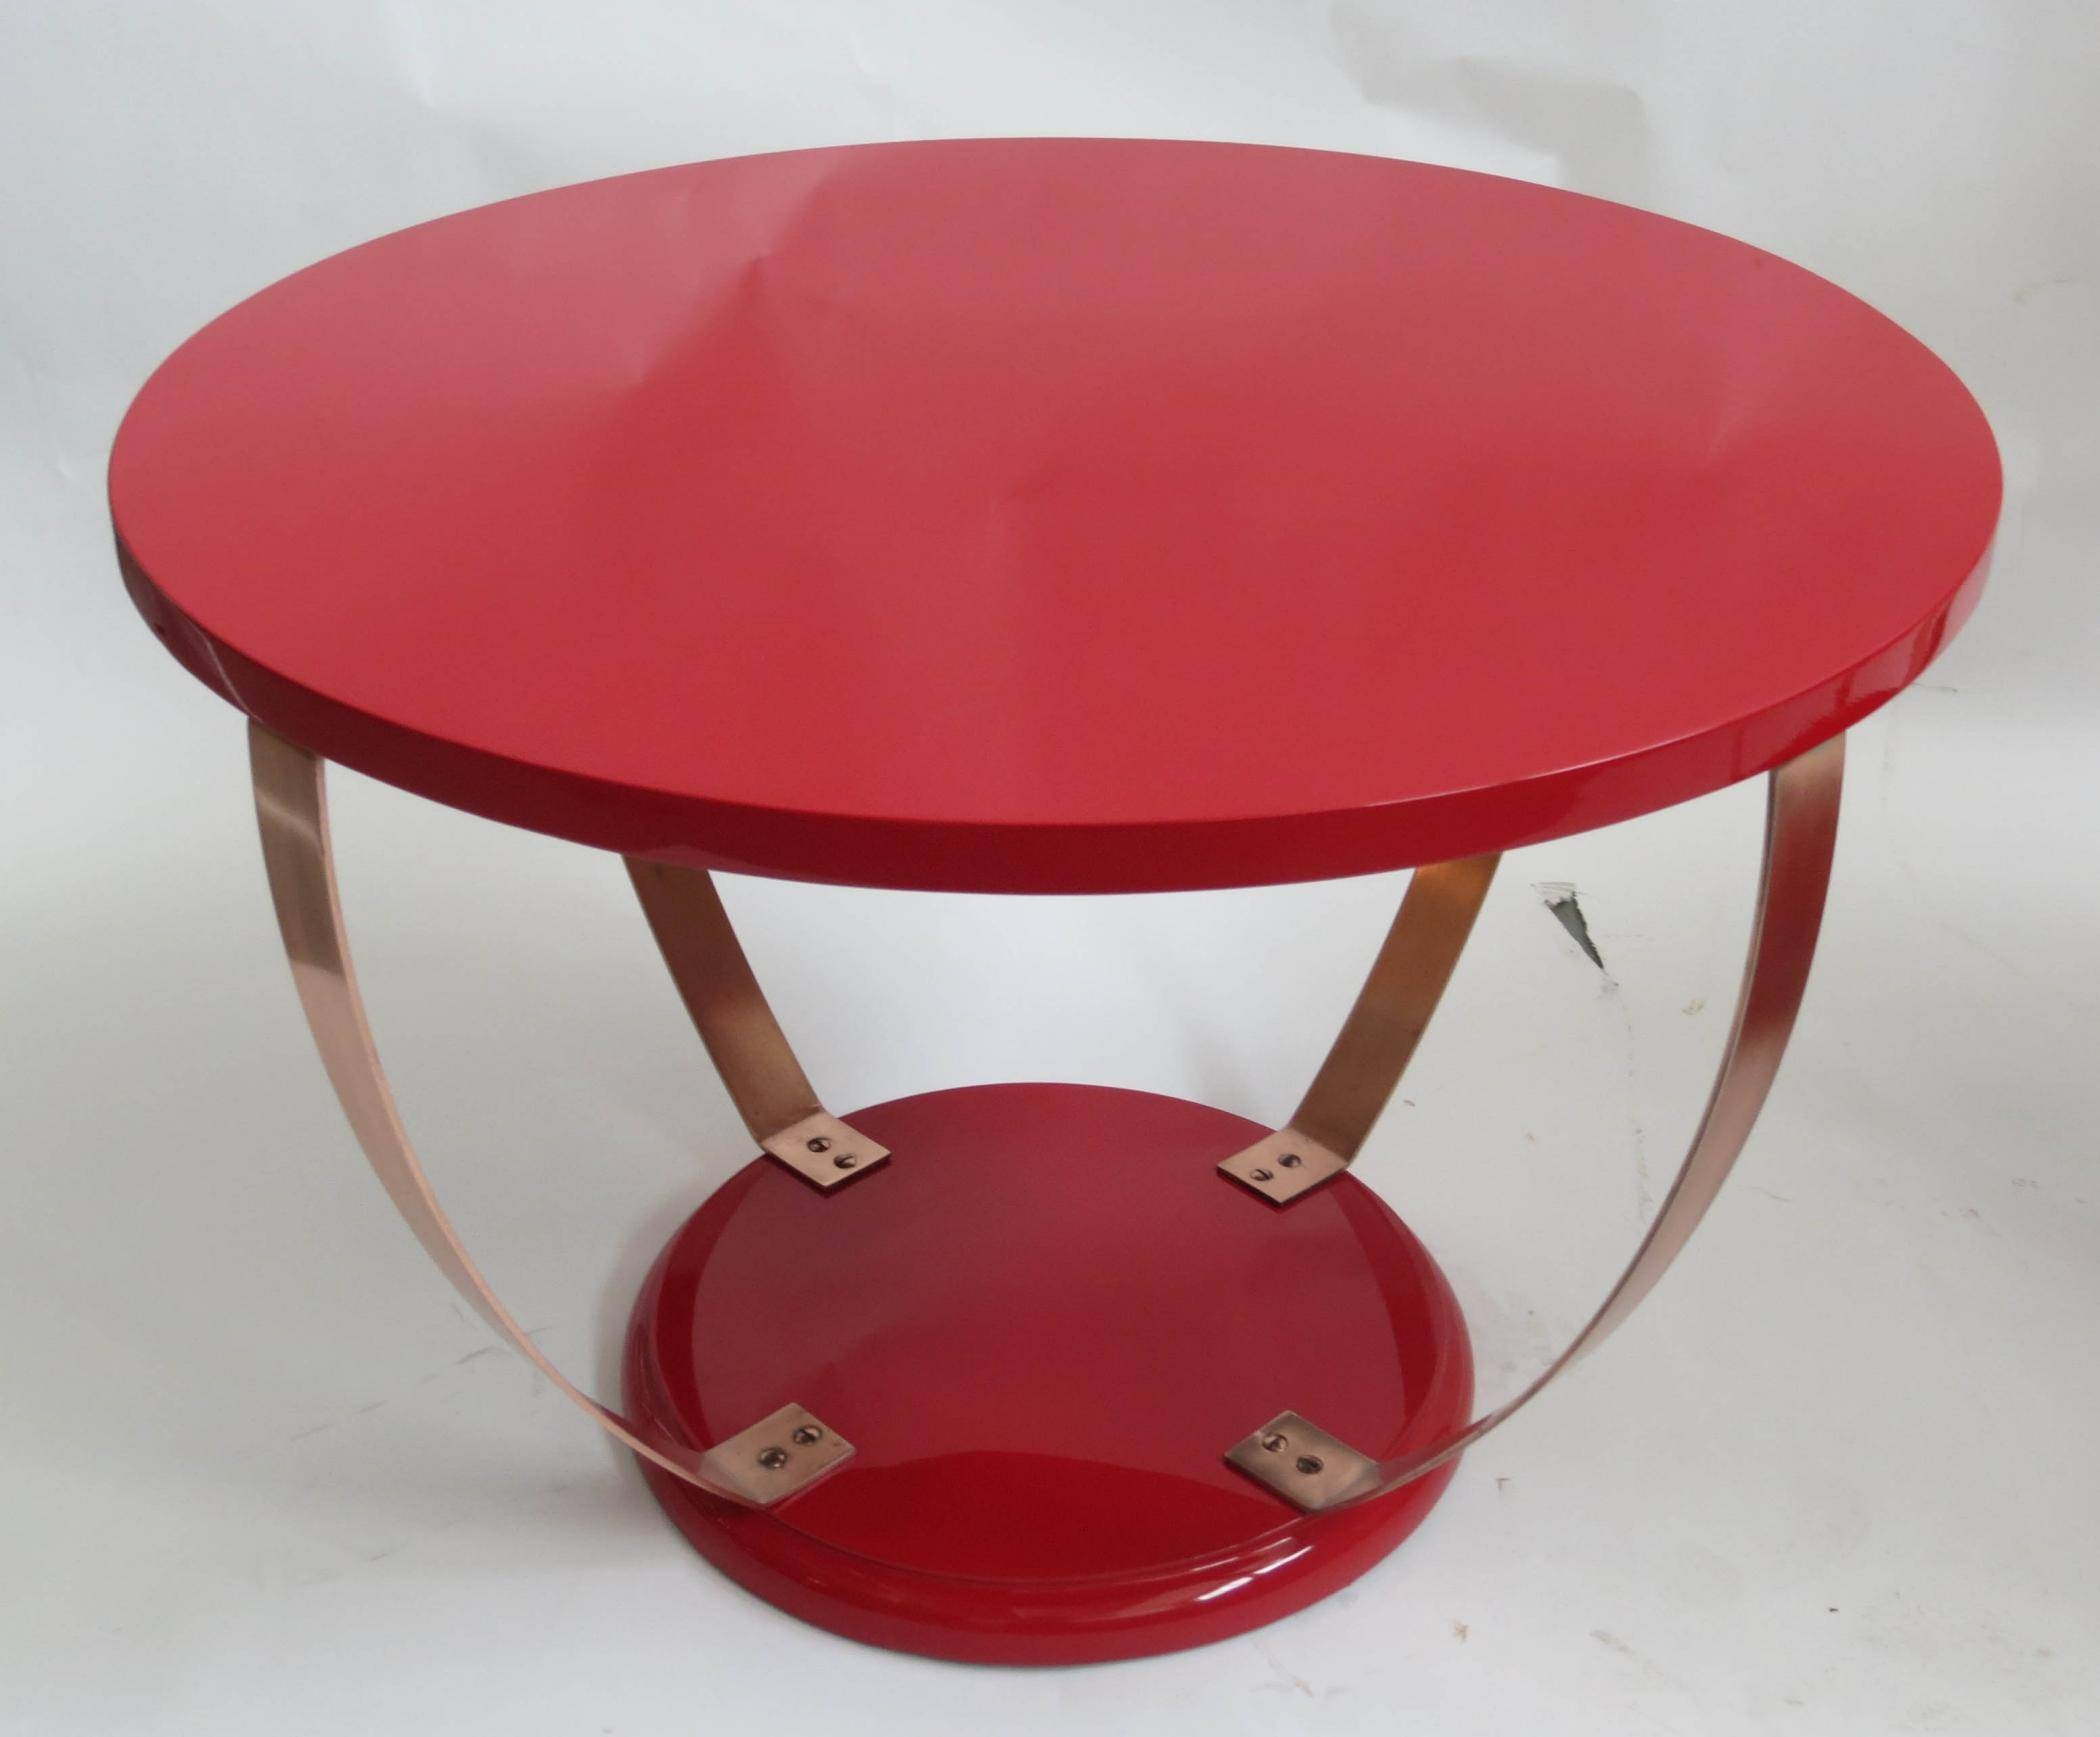 Round Red Coffee Table | Coffee Tables within Round Red Coffee Tables (Image 28 of 30)